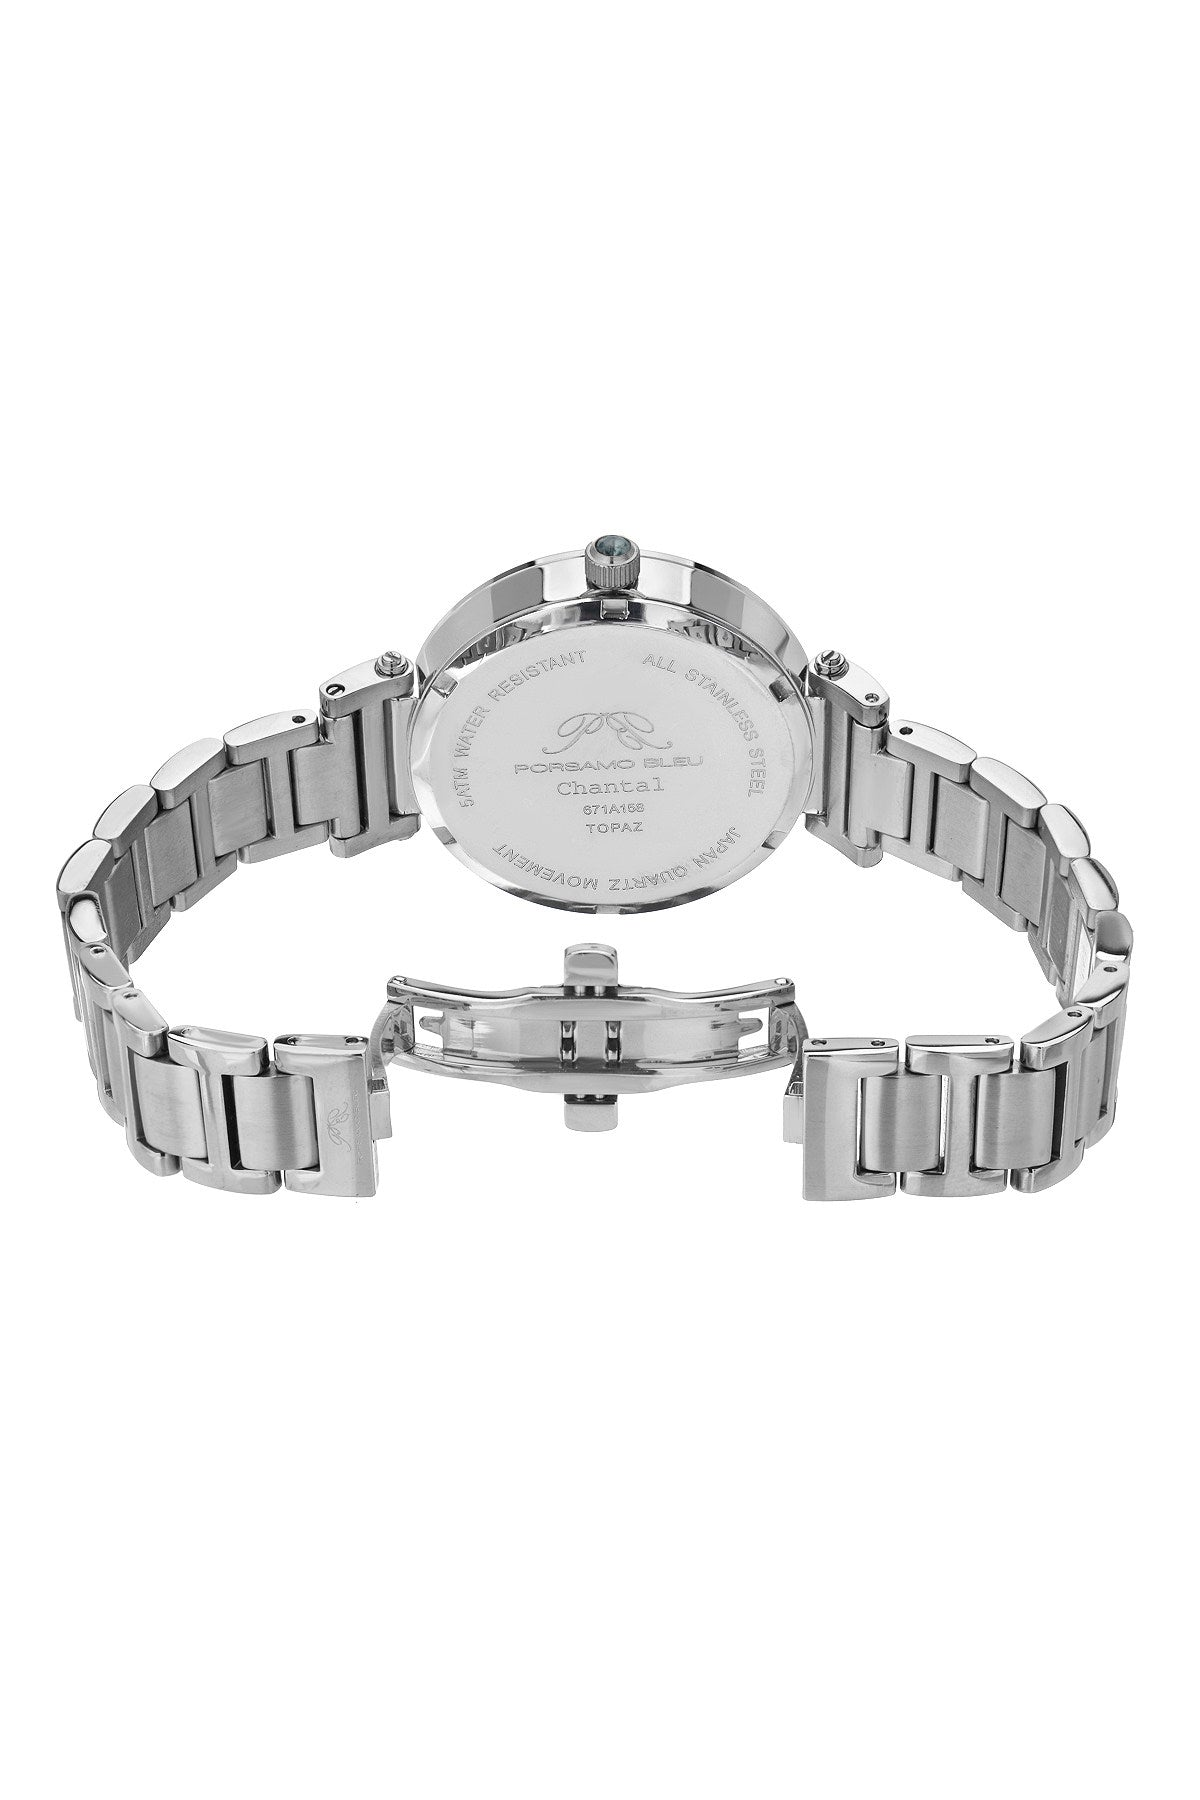 Porsamo Bleu Chantal luxury topaz women's stainless steel watch, silver, white 671ACHS